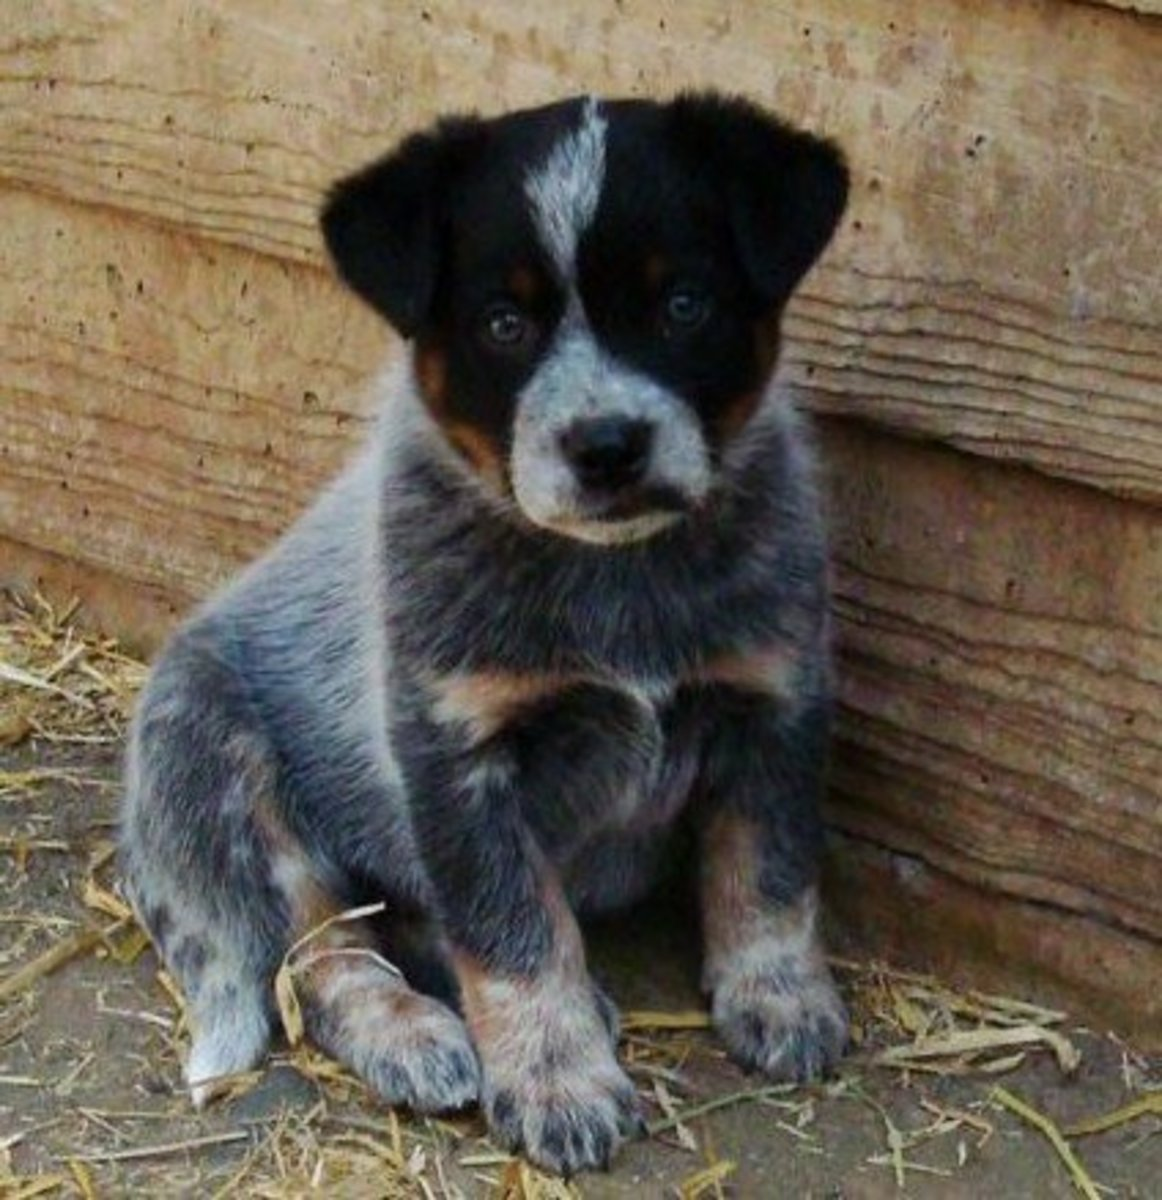 An Australian Cattle Dog as a puppy.